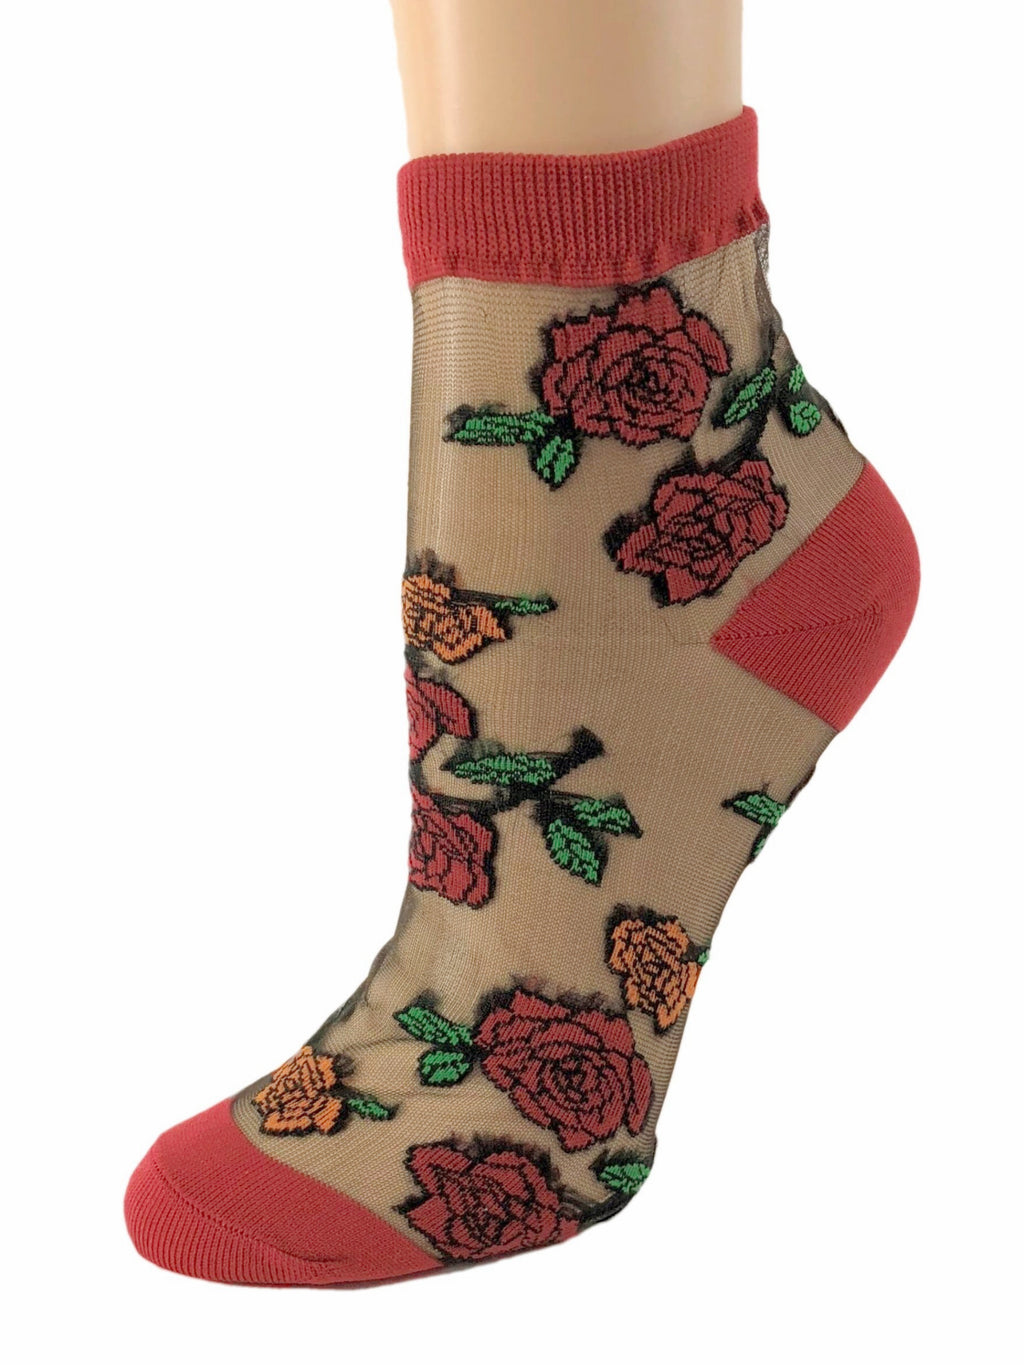 Sharp Red Roses Sheer Socks - Global Trendz Fashion®